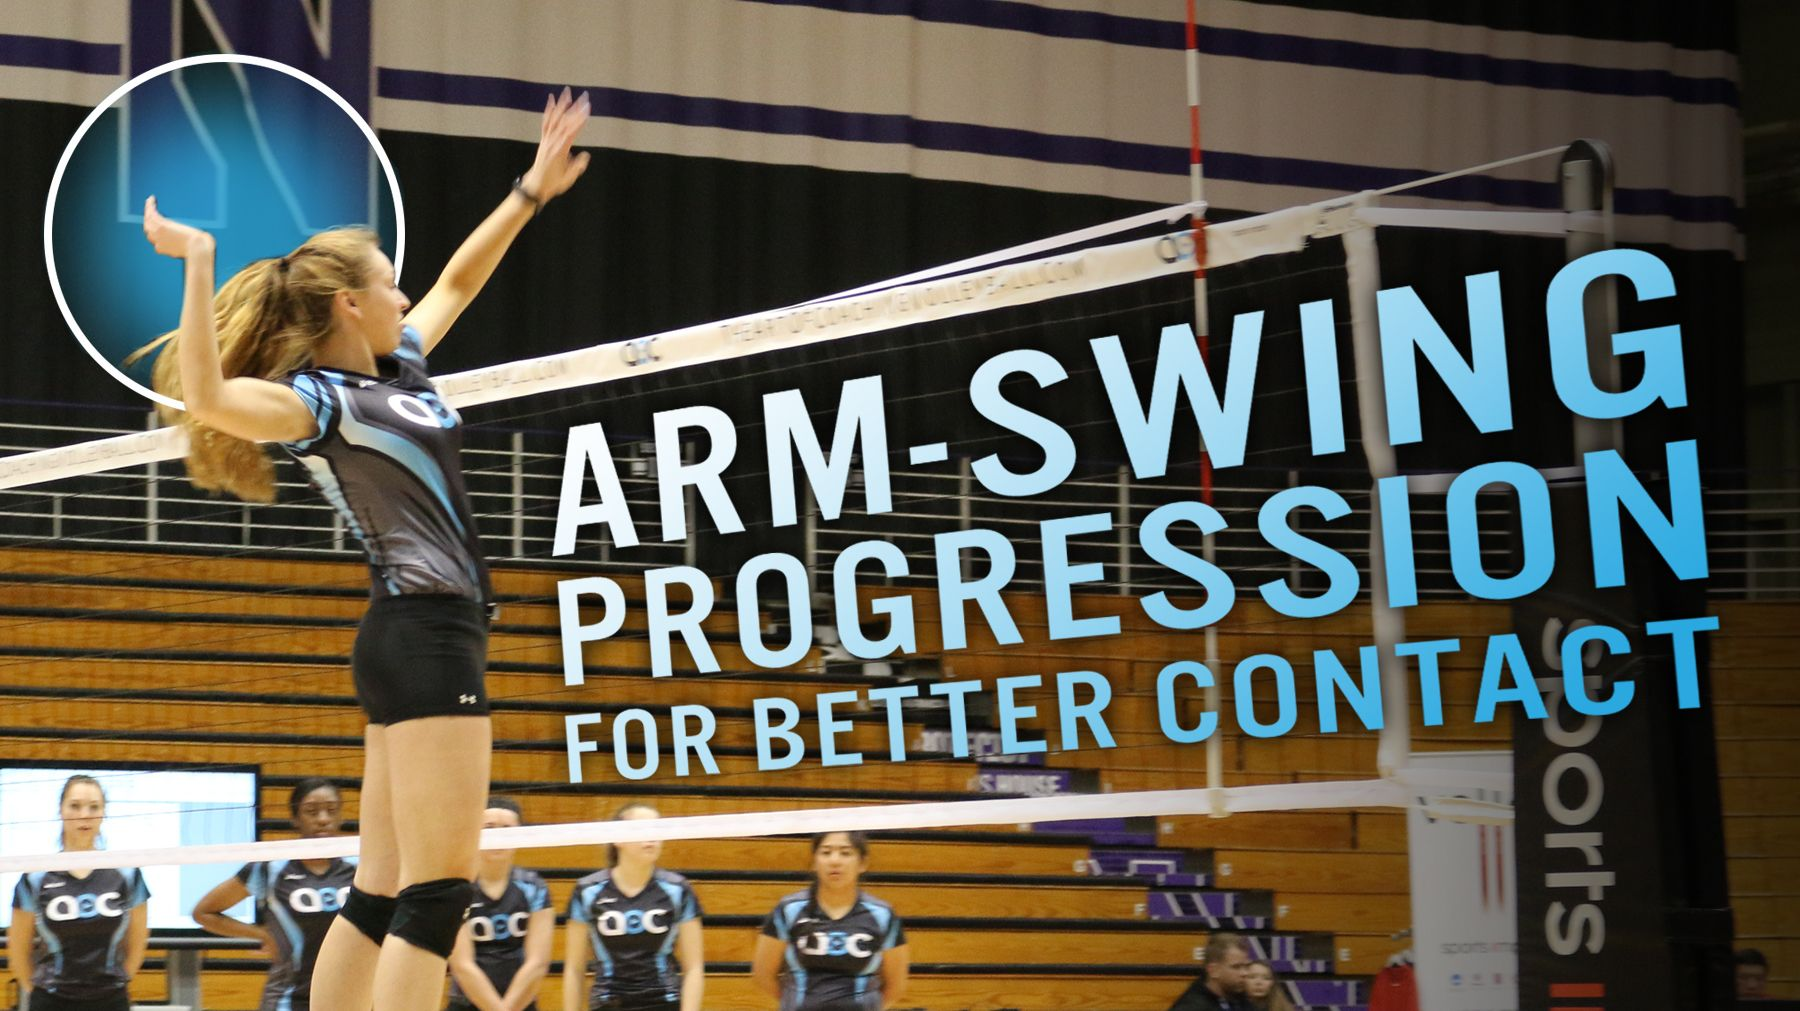 Dave Shondell Arm Swing Progression For Better Contact The Art Of Coaching Volleyball Volleyball Training Volleyball Workouts Volleyball Practice